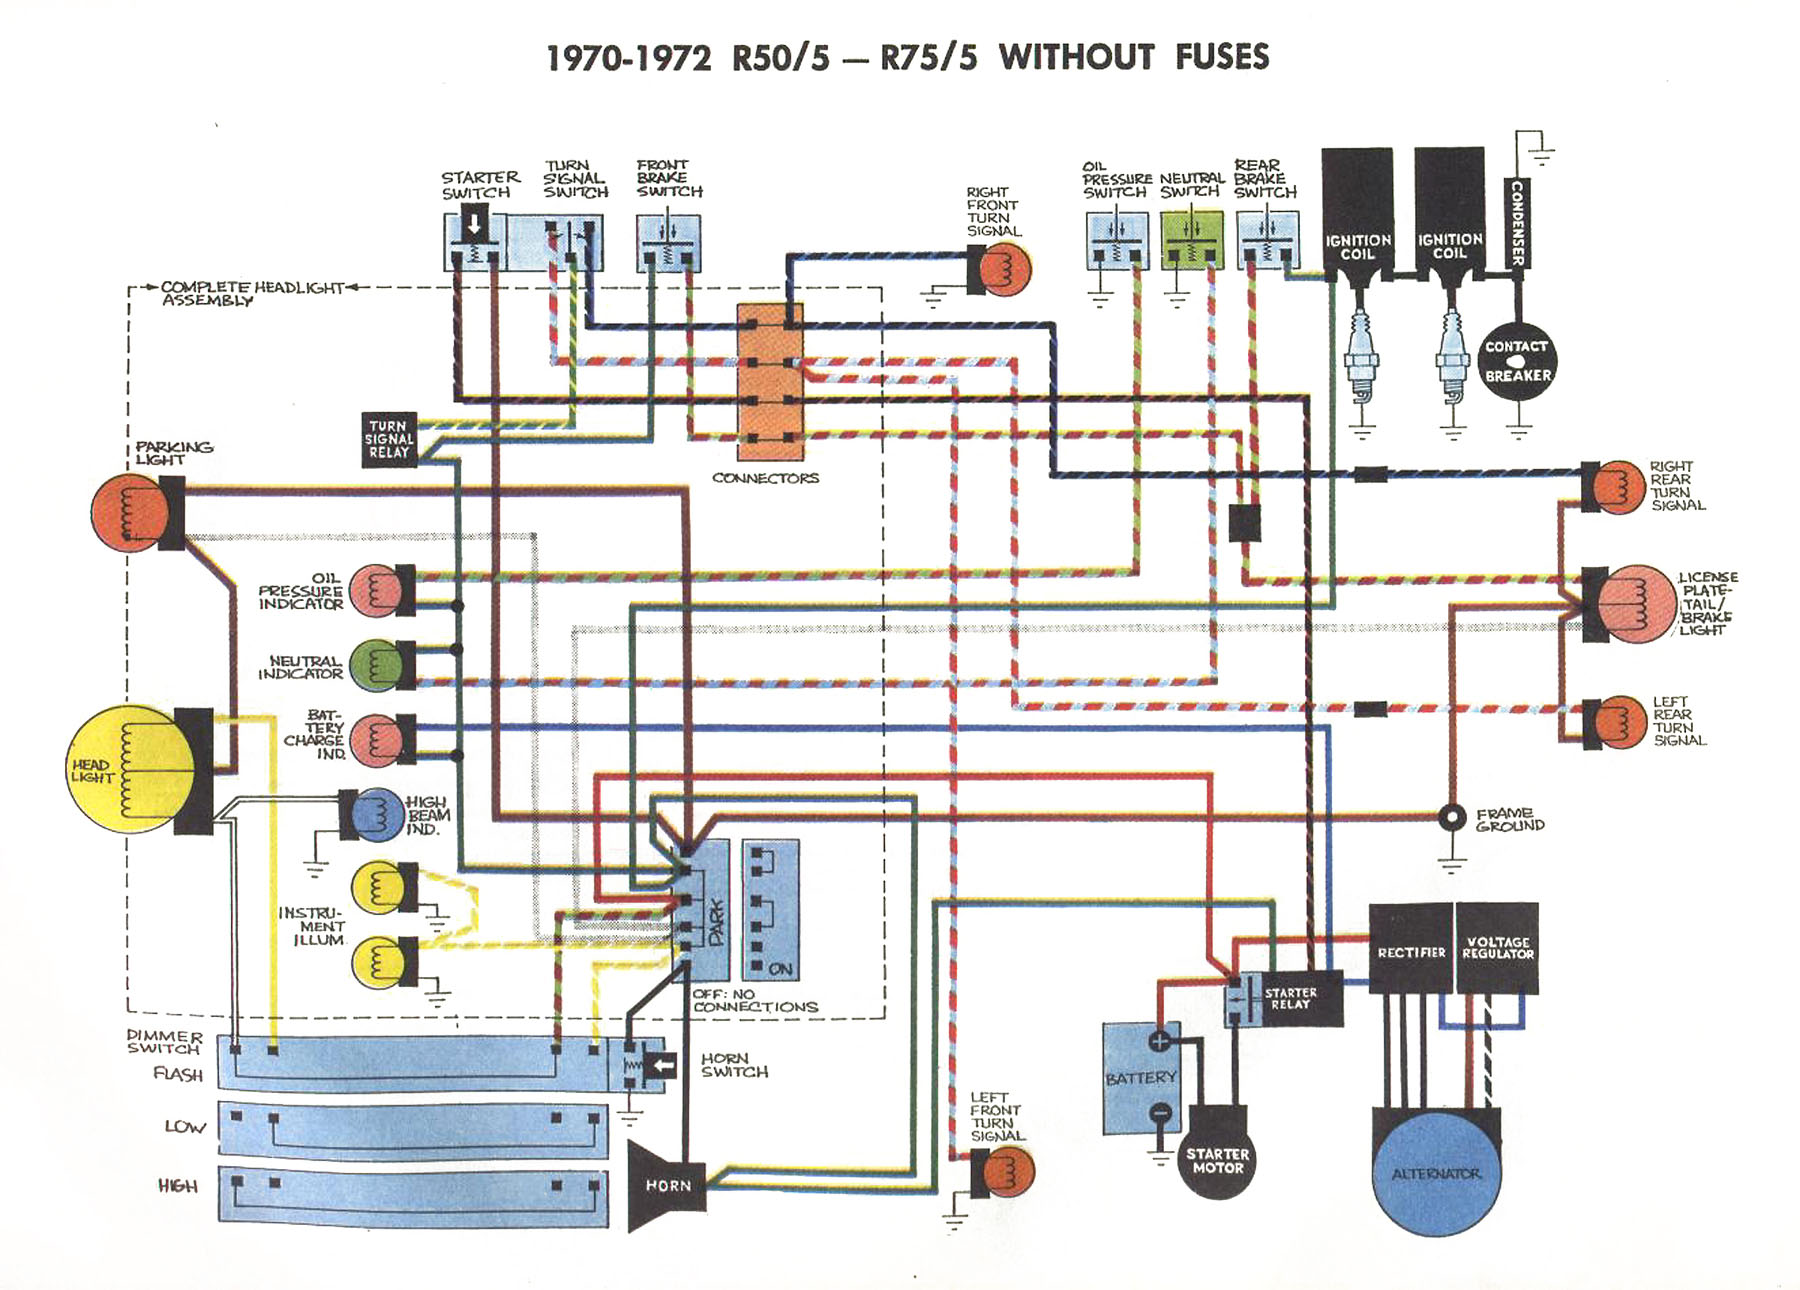 5_unfused_schematic?resize=665%2C477 1974 yamaha xs650 wiring diagram wiring diagram XS2 Bow String at readyjetset.co